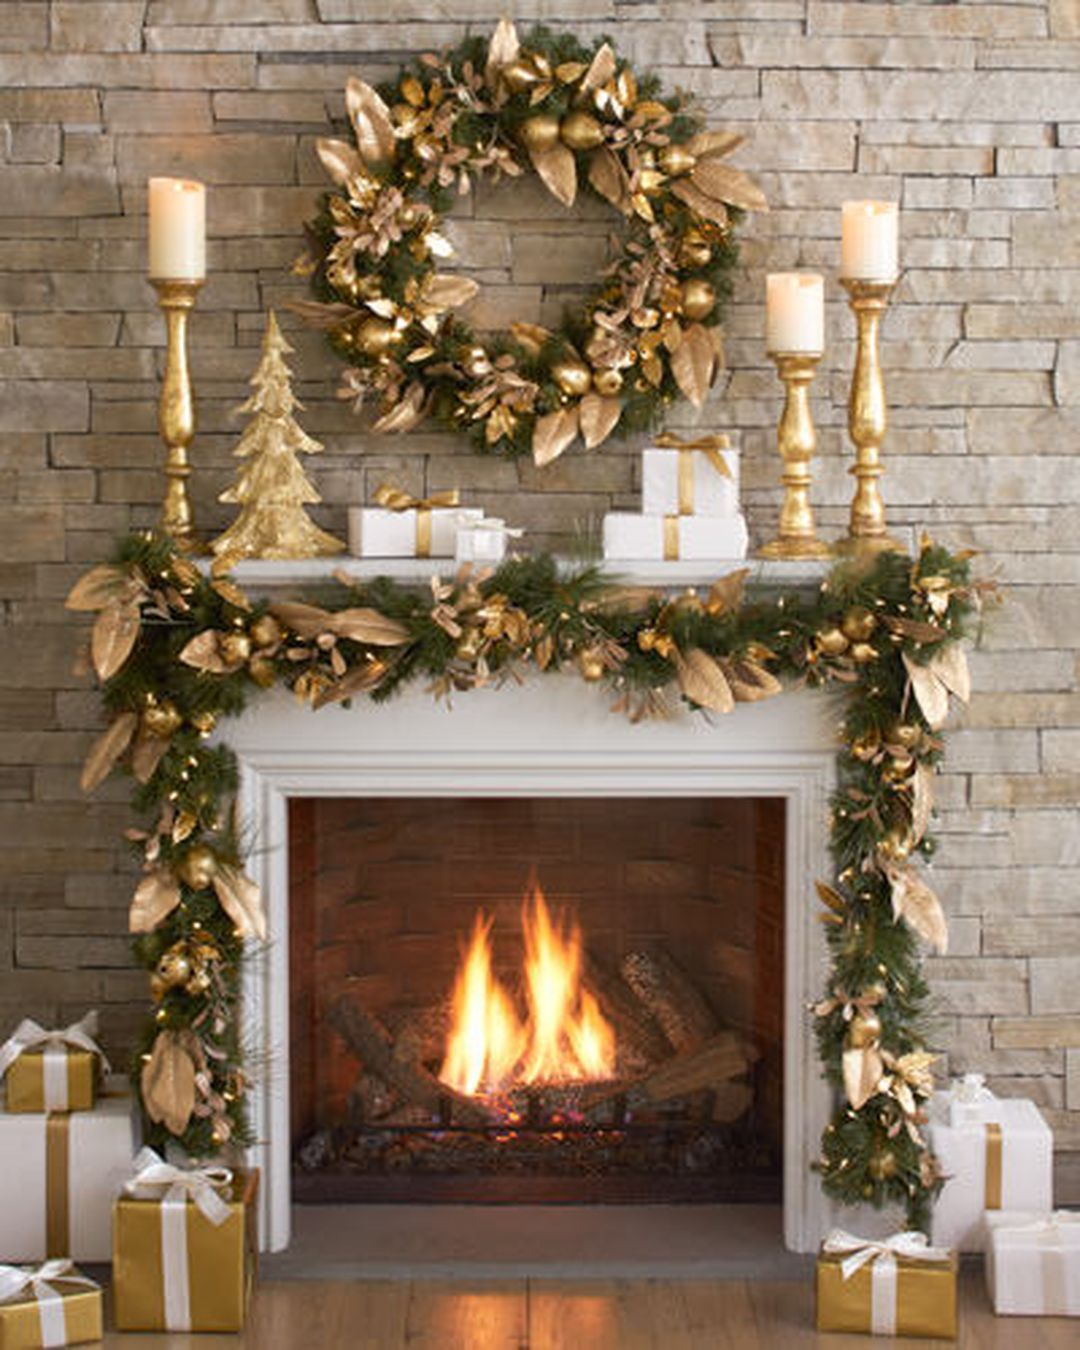 Christmas Mantel Decorating Ideas On The Cheap 17 Decomagz Christmas Mantel Decorations Gold Christmas Decorations Christmas Fireplace Decor